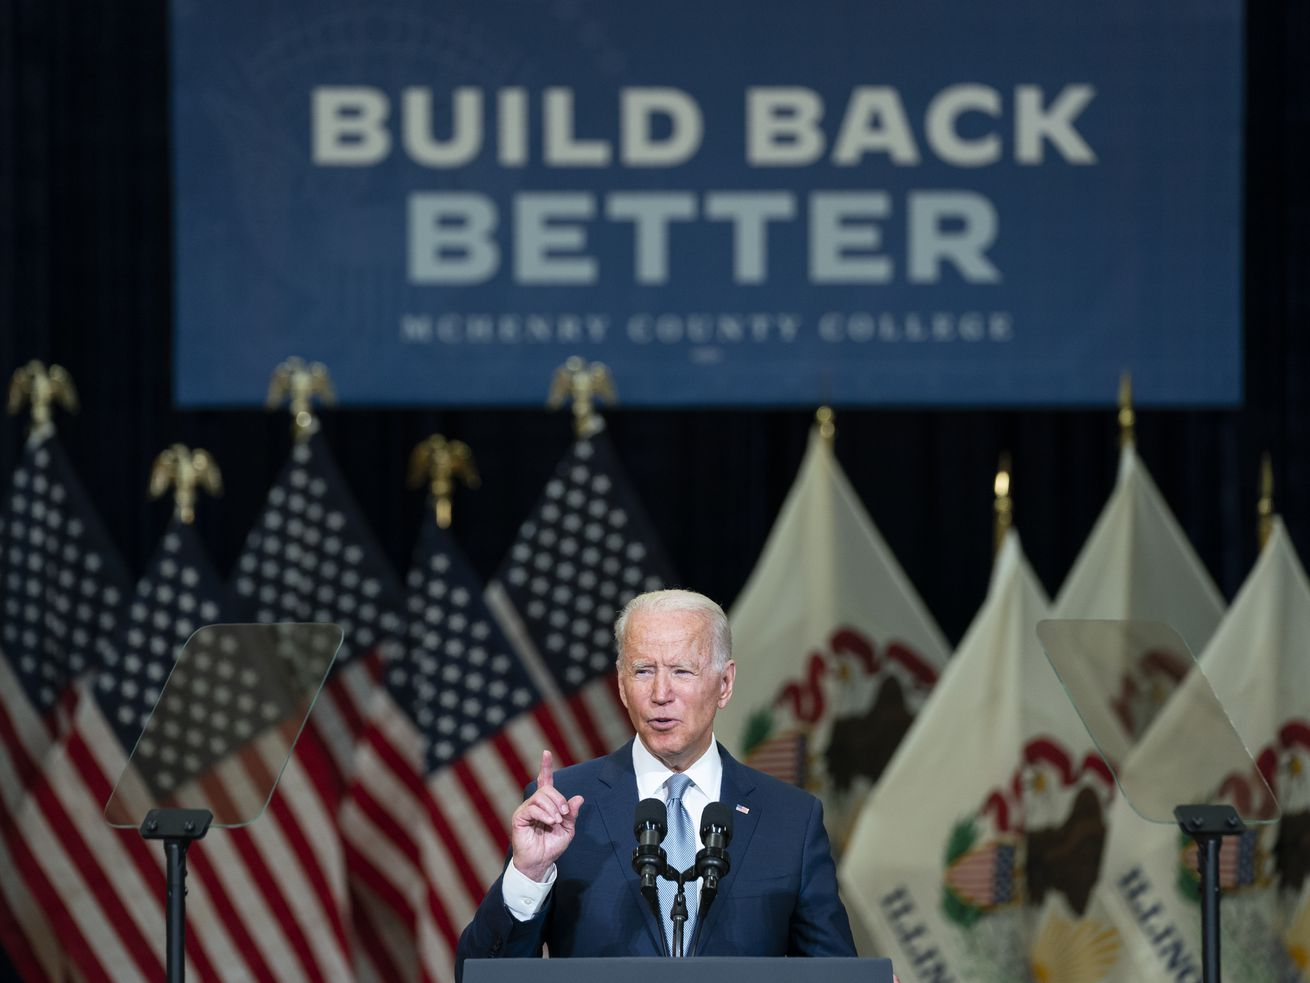 President Joe Biden delivers remarks on infrastructure spending at McHenry County College, Wednesday, July 7, 2021, in Crystal Lake, Ill. (AP Photo/Evan Vucci) ORG XMIT: ILEV105